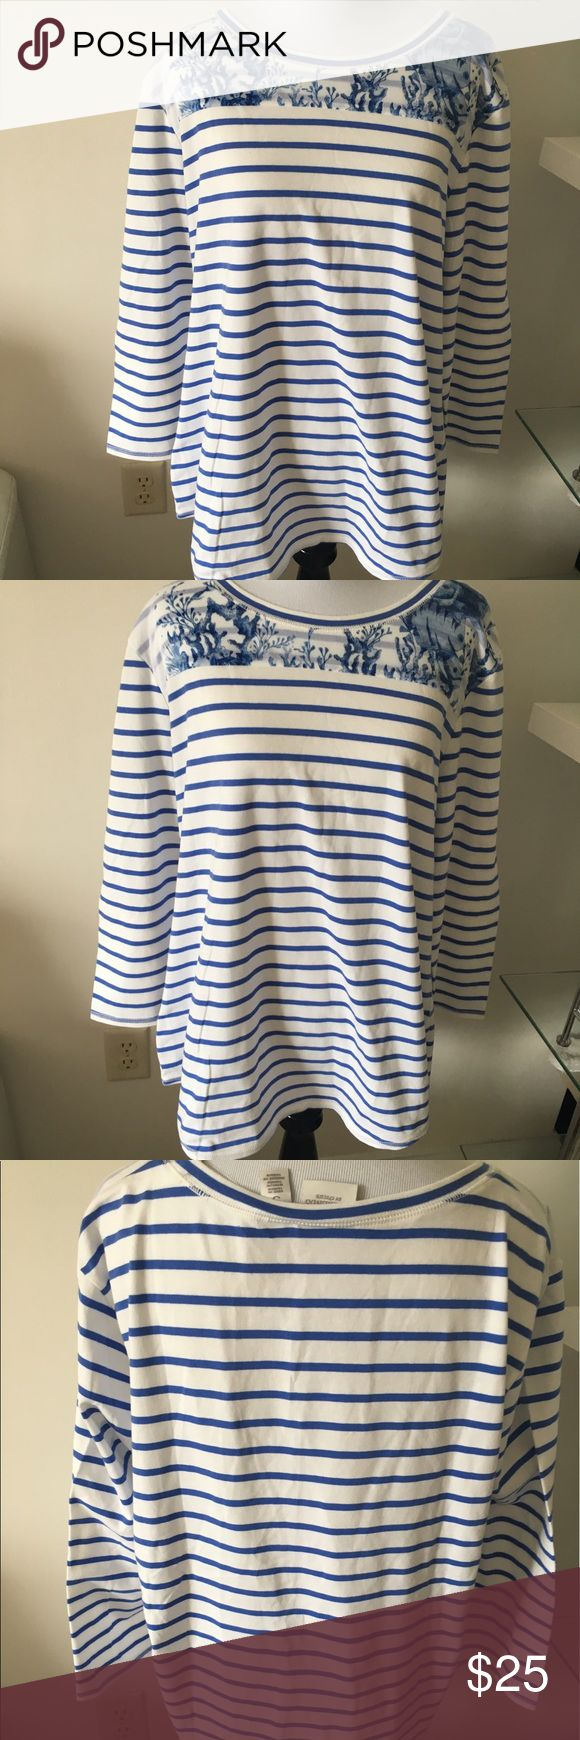 NWT Blue and White striped shirt 💝 NWT Blue and white striped nautical shirt from Weekends by Chico's. Shirt is a Chico's size 3 and features a seashell pattern neck overlay on blue and white stripes. Body of shirt is 28 inches in length from shoulder to bottom. Sleeves measure 19 inches in length from shoulder. Comes from smoke free home. 💋15% off bundles of 3 or more.                                   💋 No trades.   💋 No Holds…